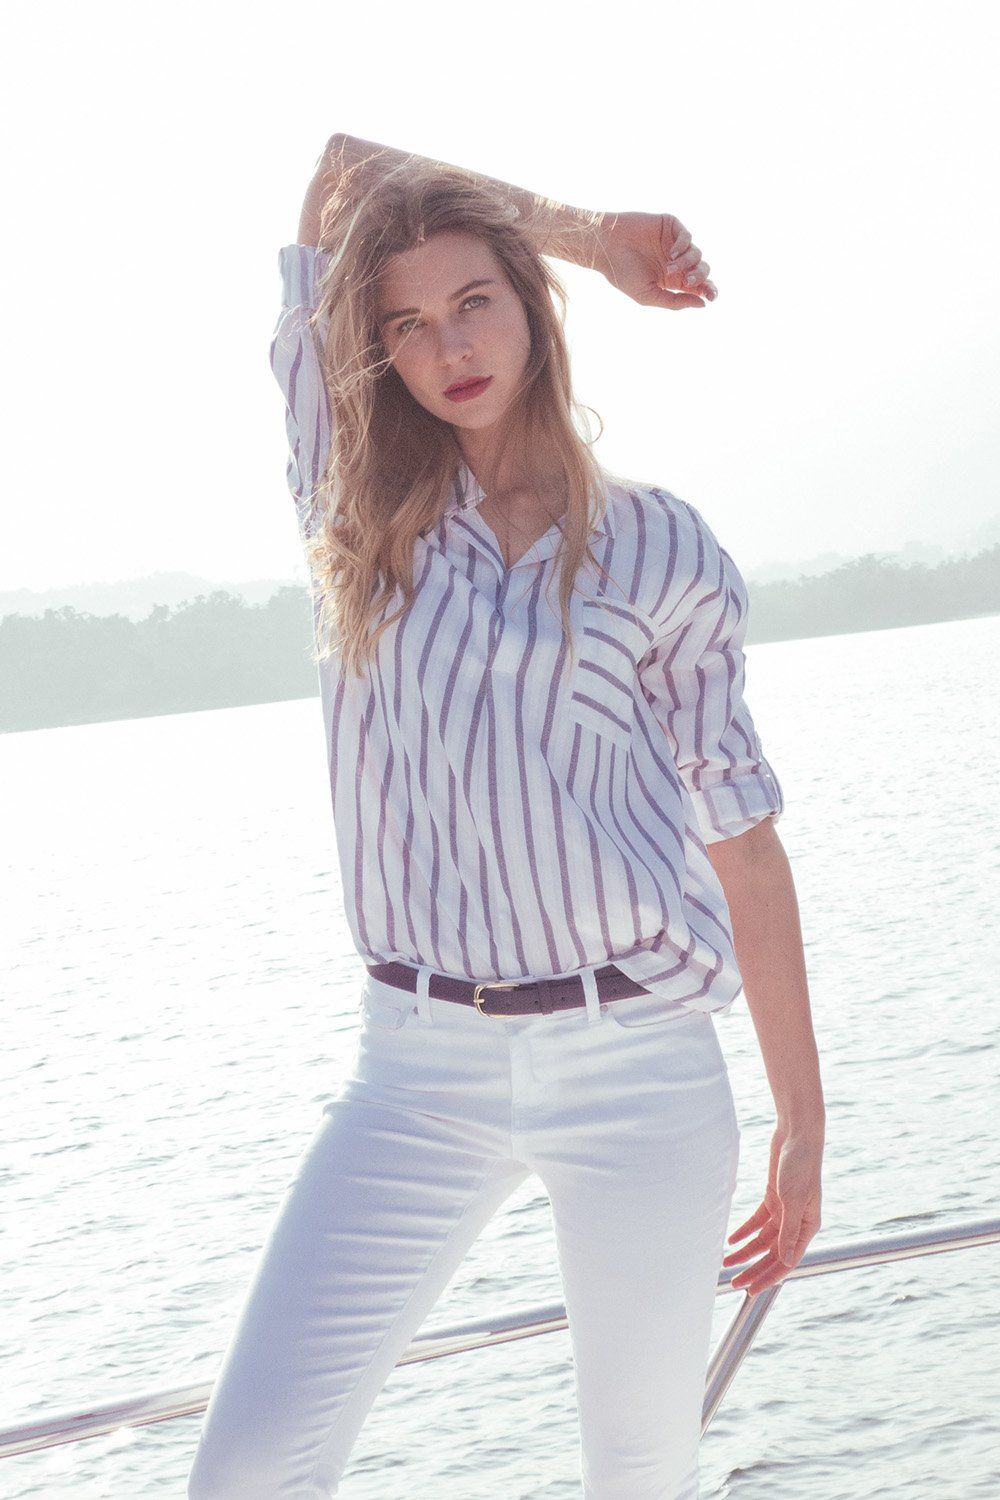 bluse anky – colloseum | gestreifte bluse, models, bluse